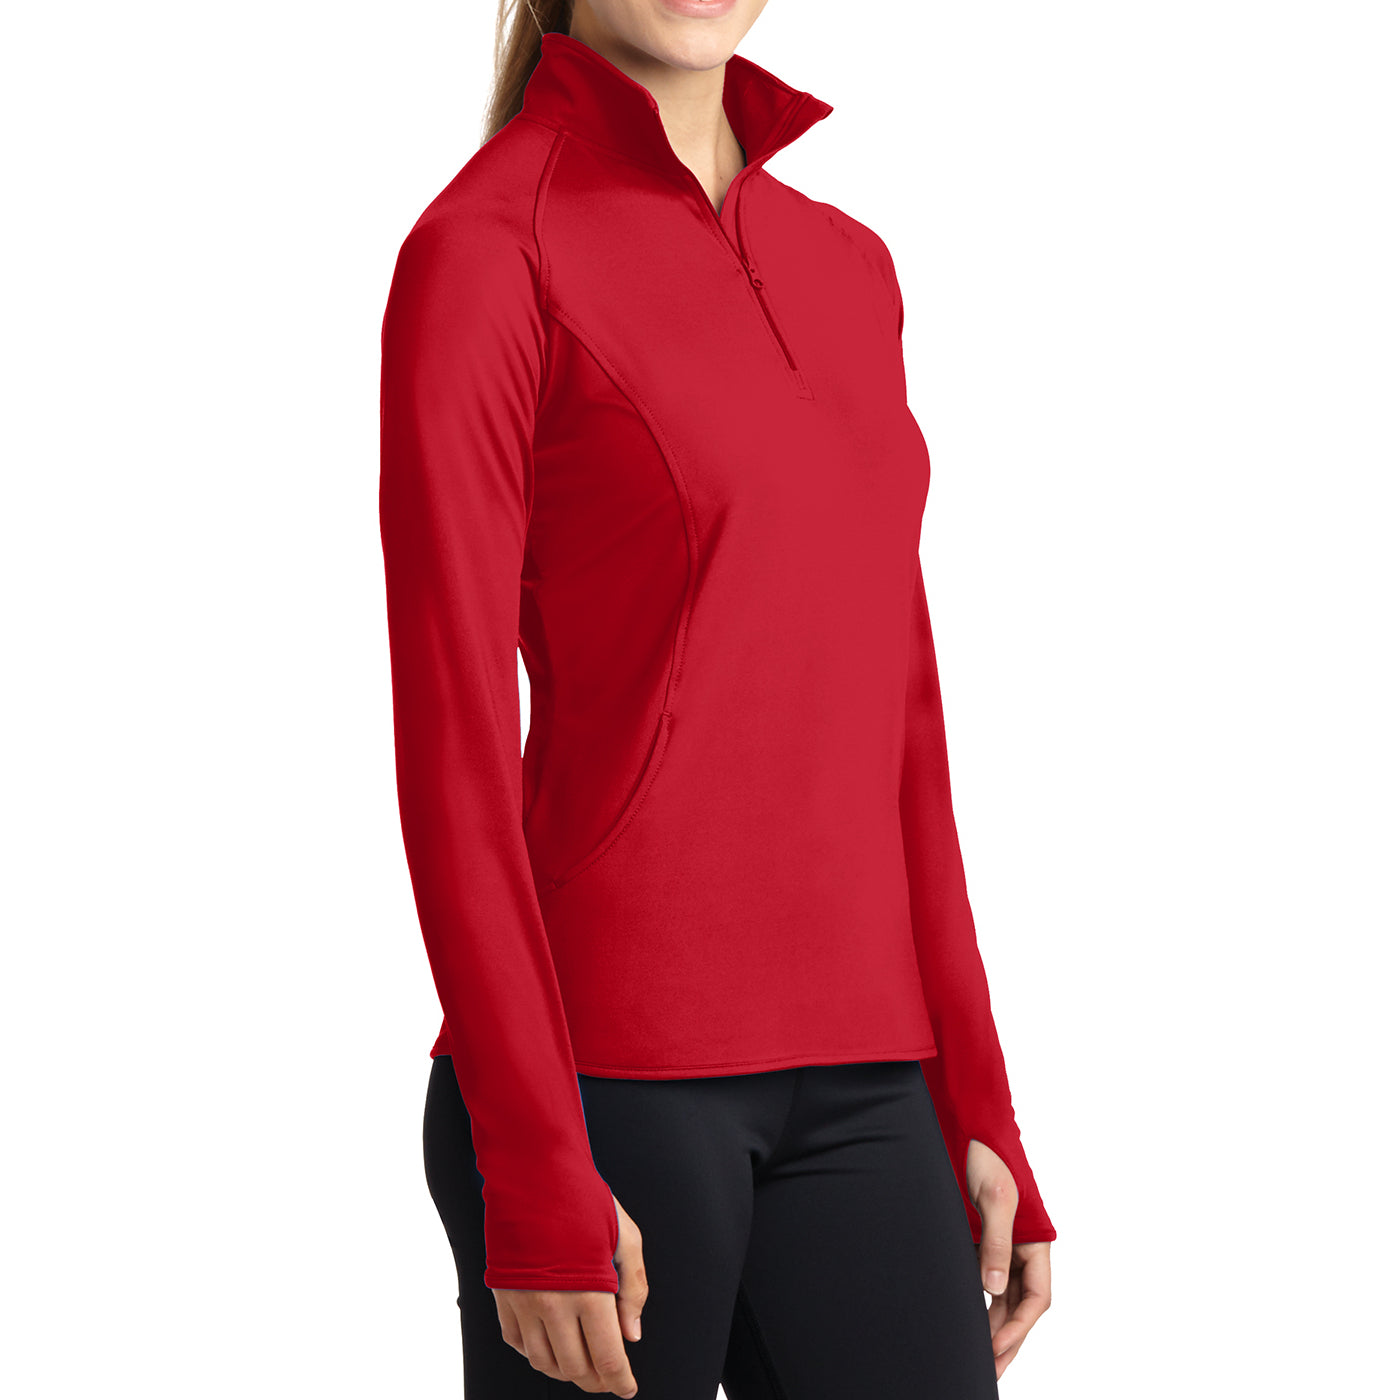 Women's Sport Wick Stretch 1/2 Zip Pullover - True Red - Side